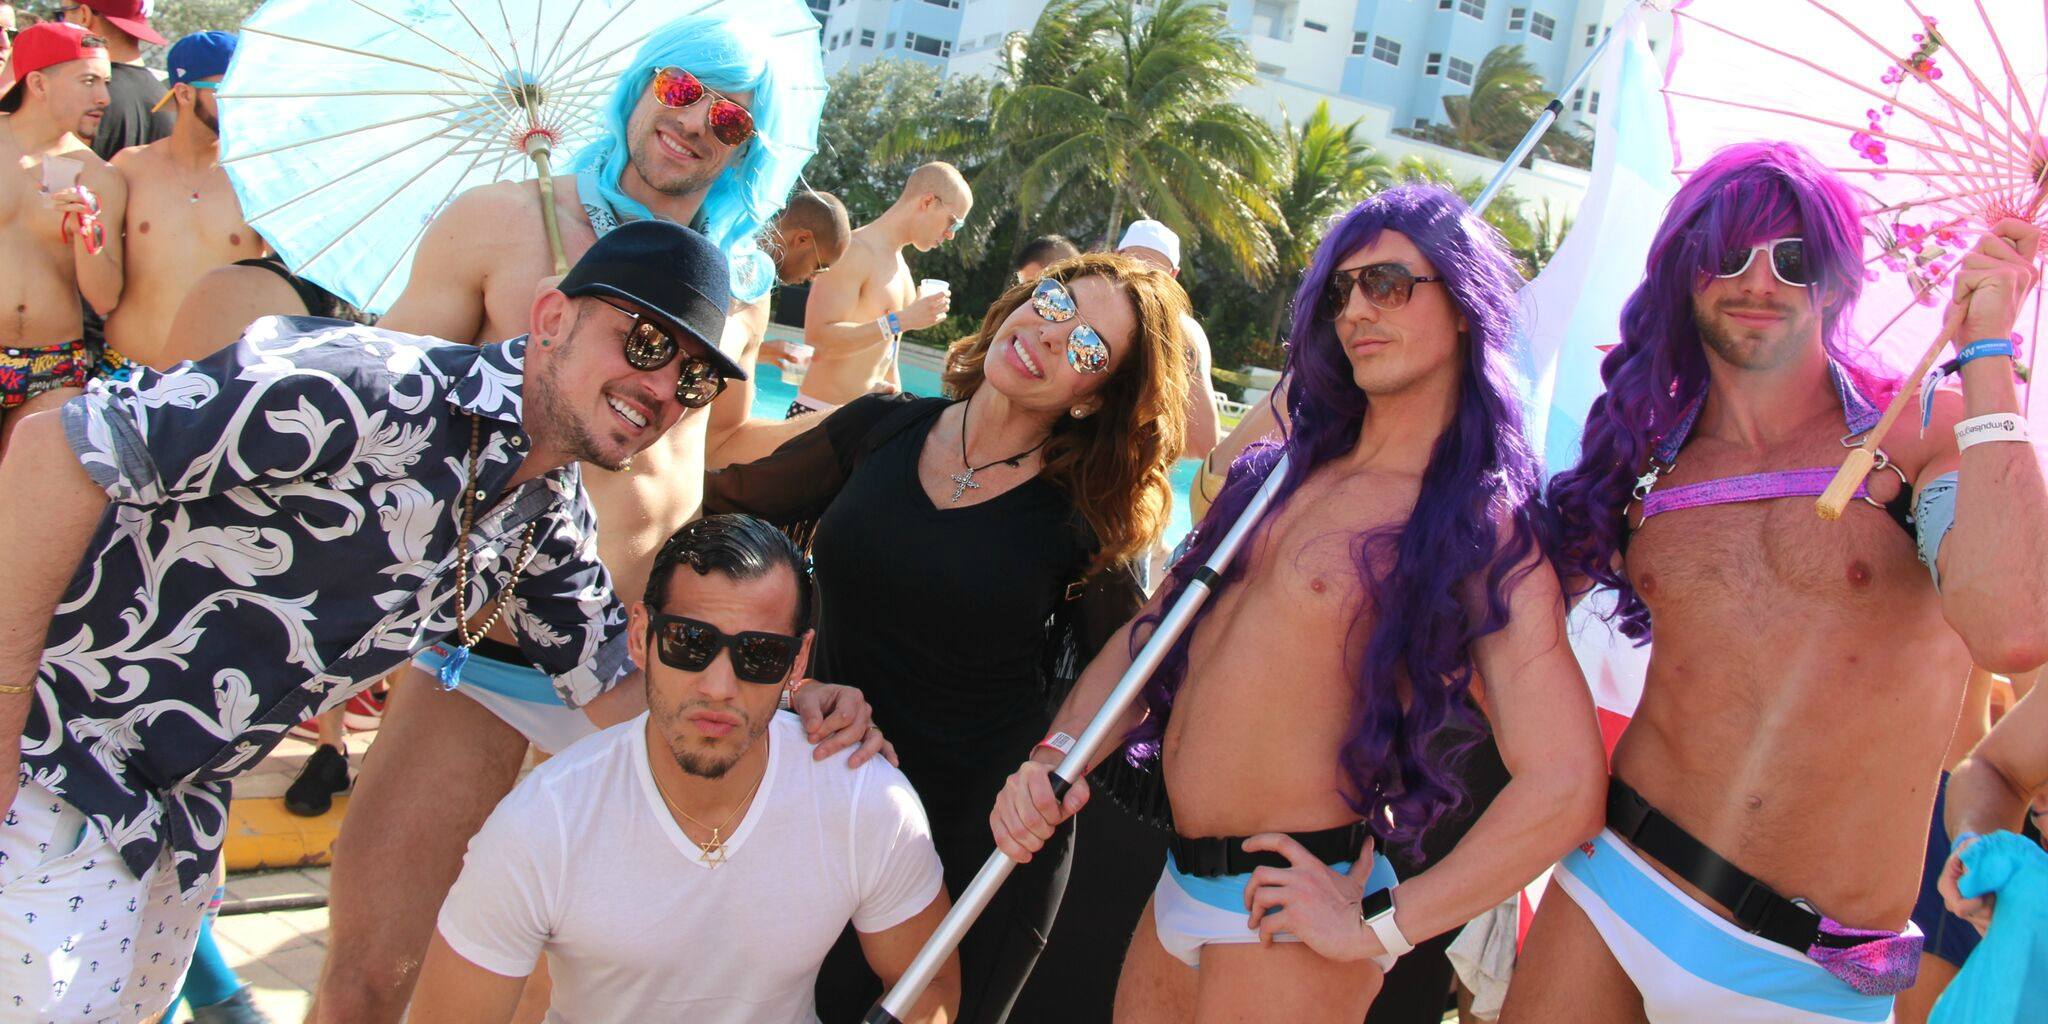 Gay Travelers Flock to Miami Beach for Same Sex in the City' Package